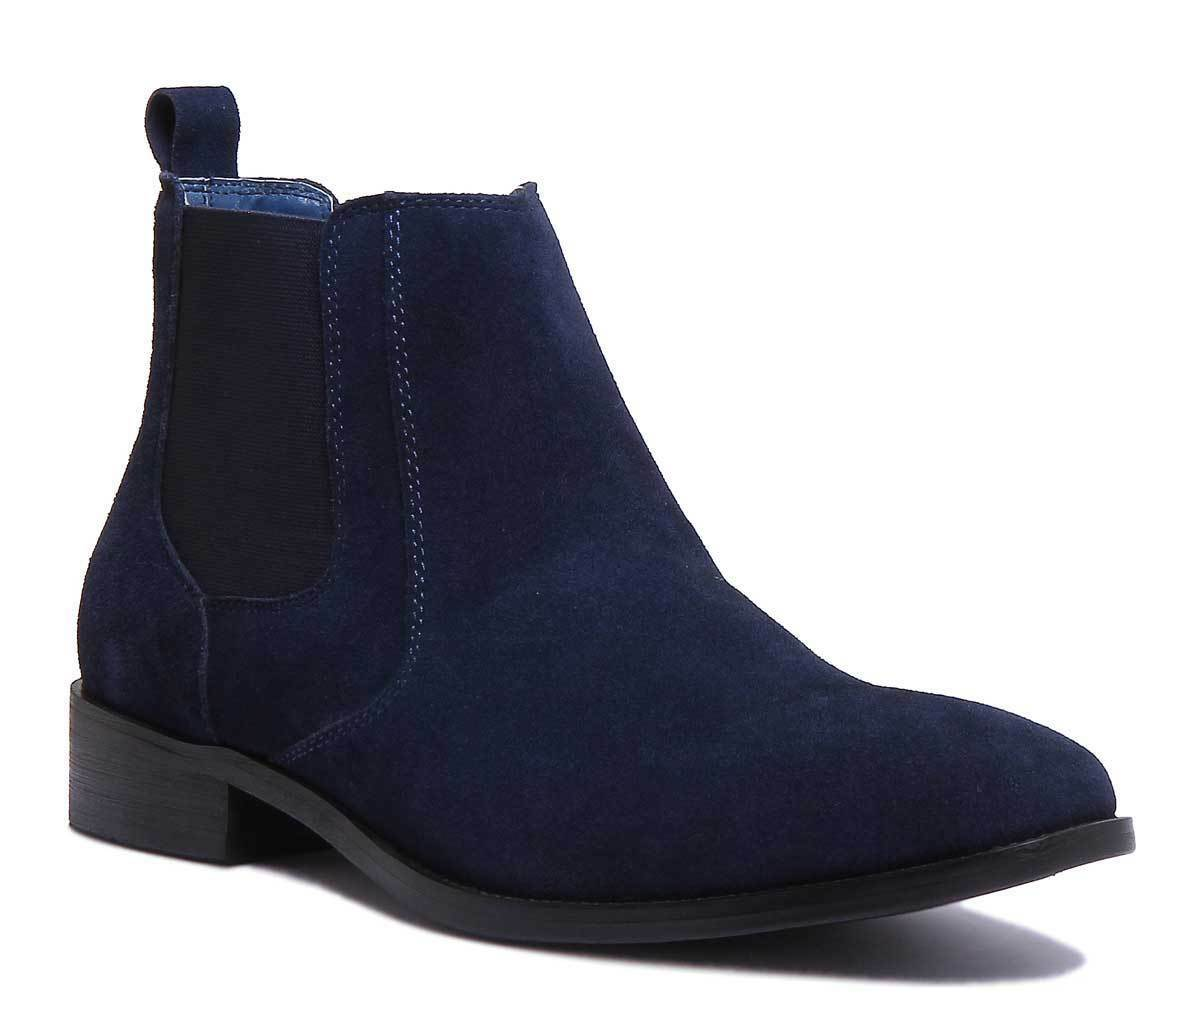 Justin Reece Leo Mens Navy Suede Leather Shoes Size UK 6 -12